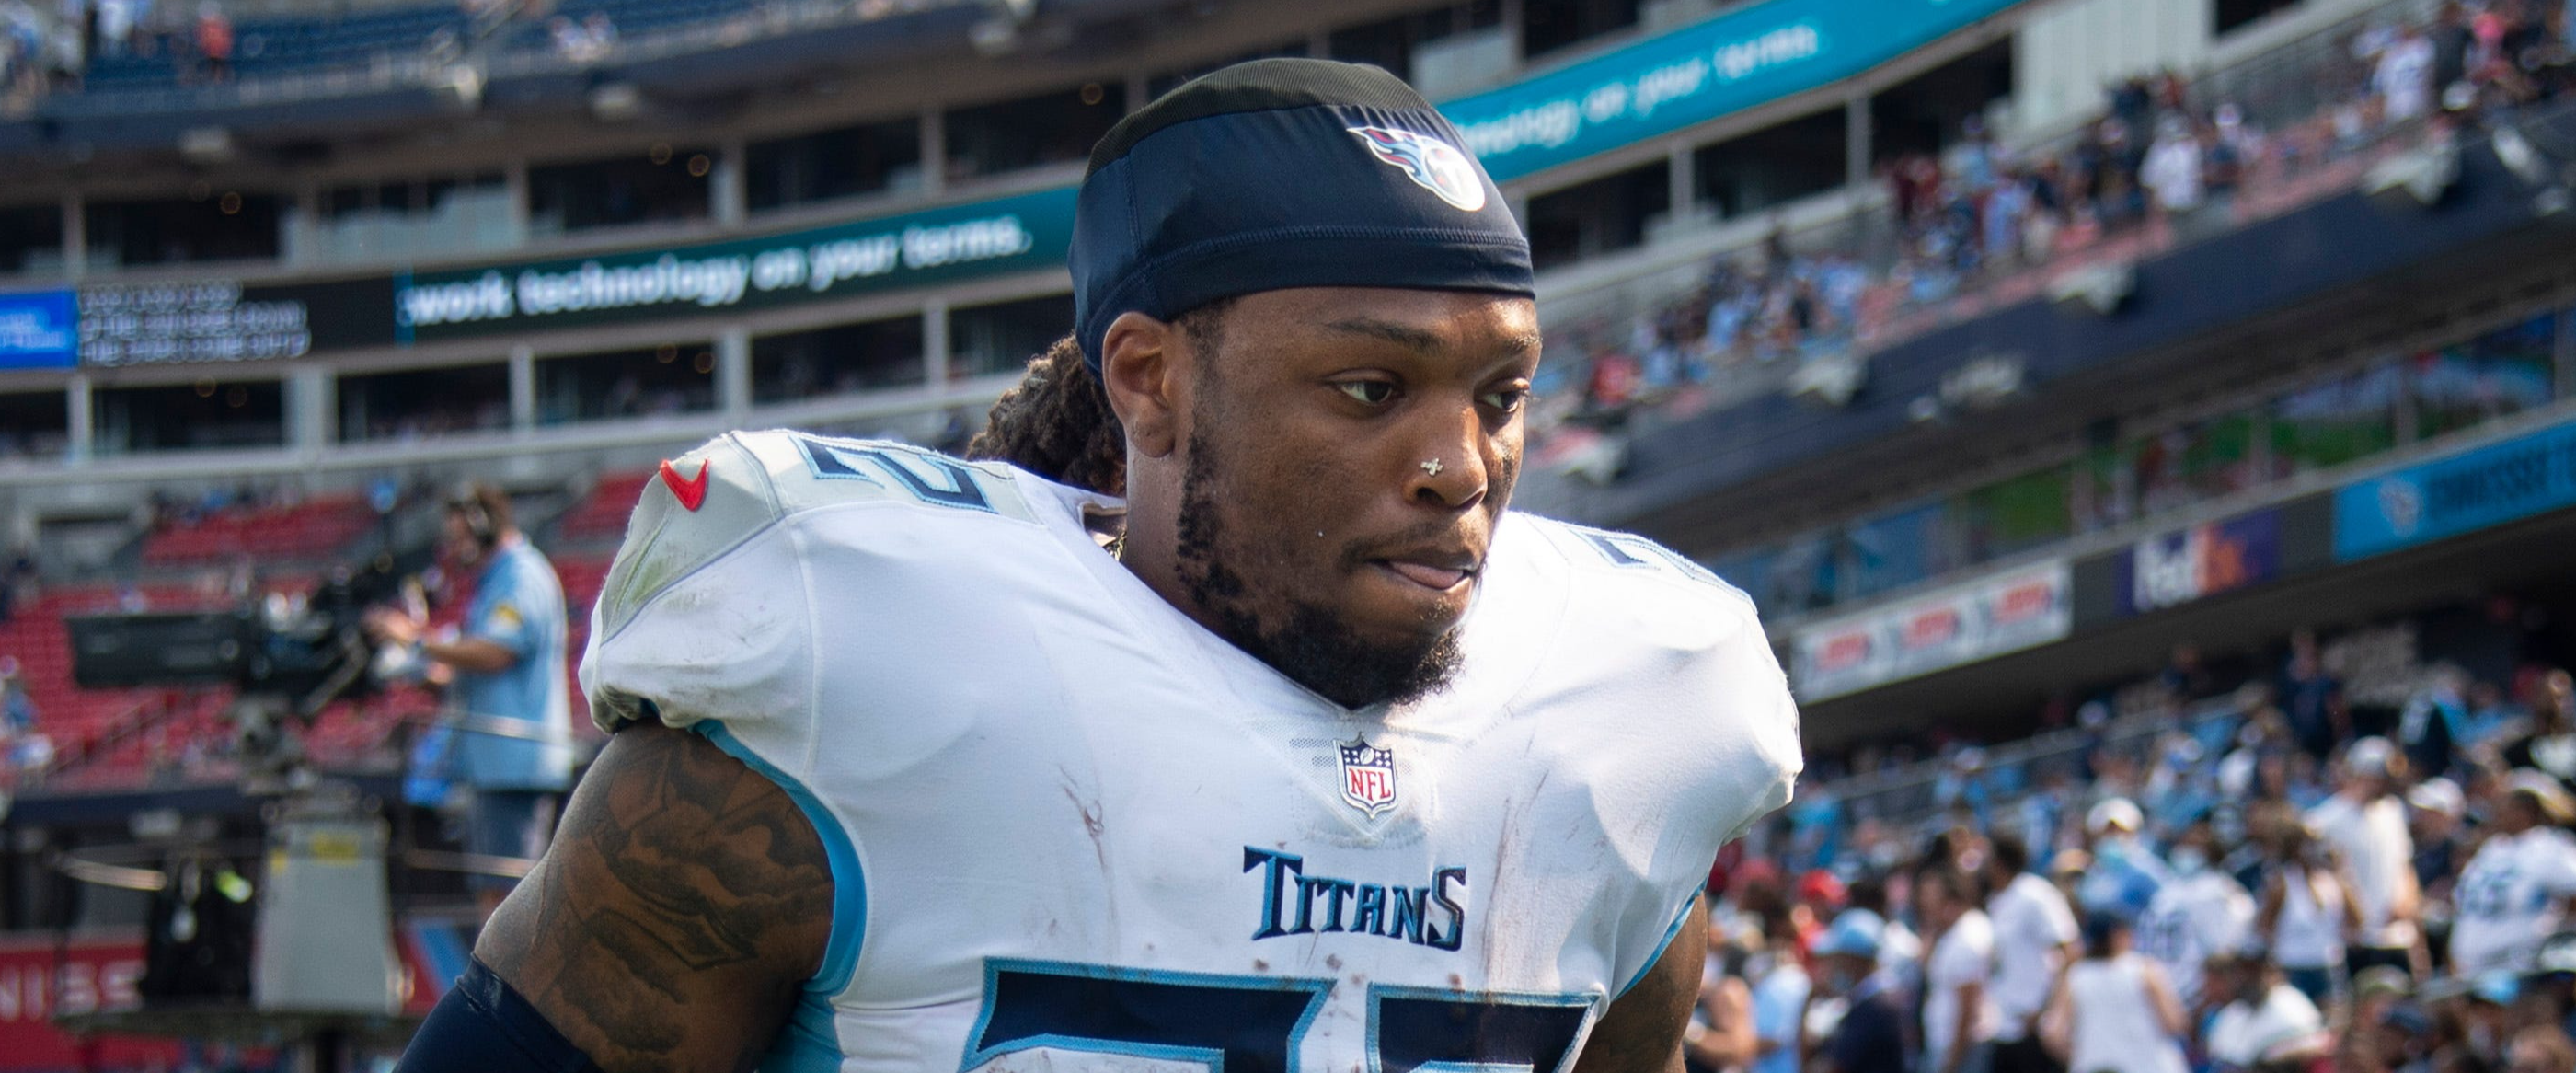 Seahawks - Titans betting lines and trends